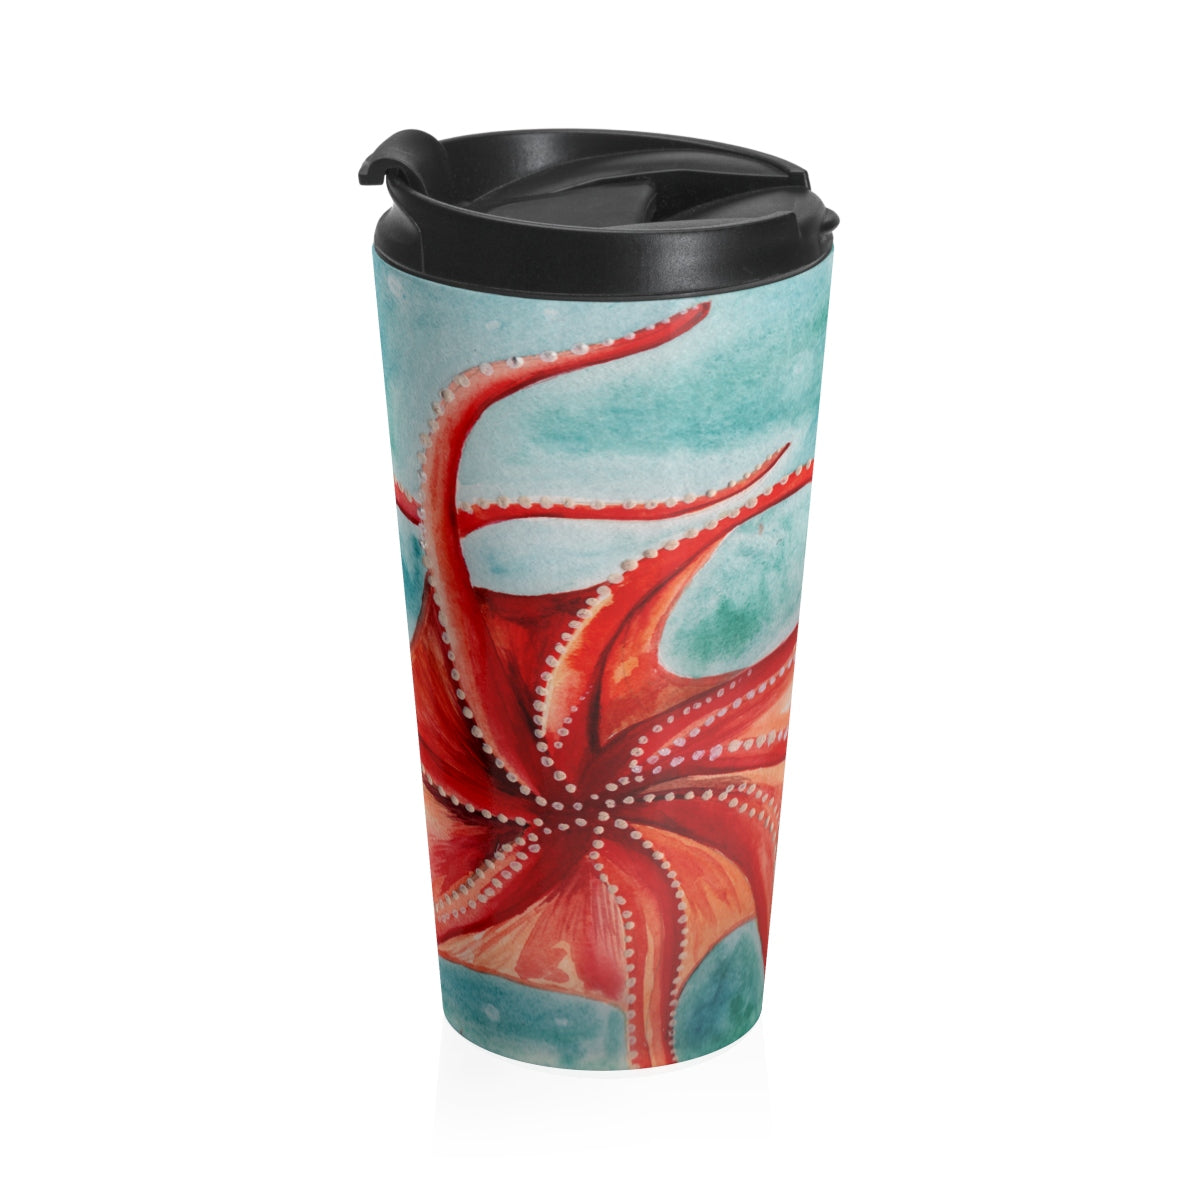 Times of Quiet Stainless Steel Travel Mug